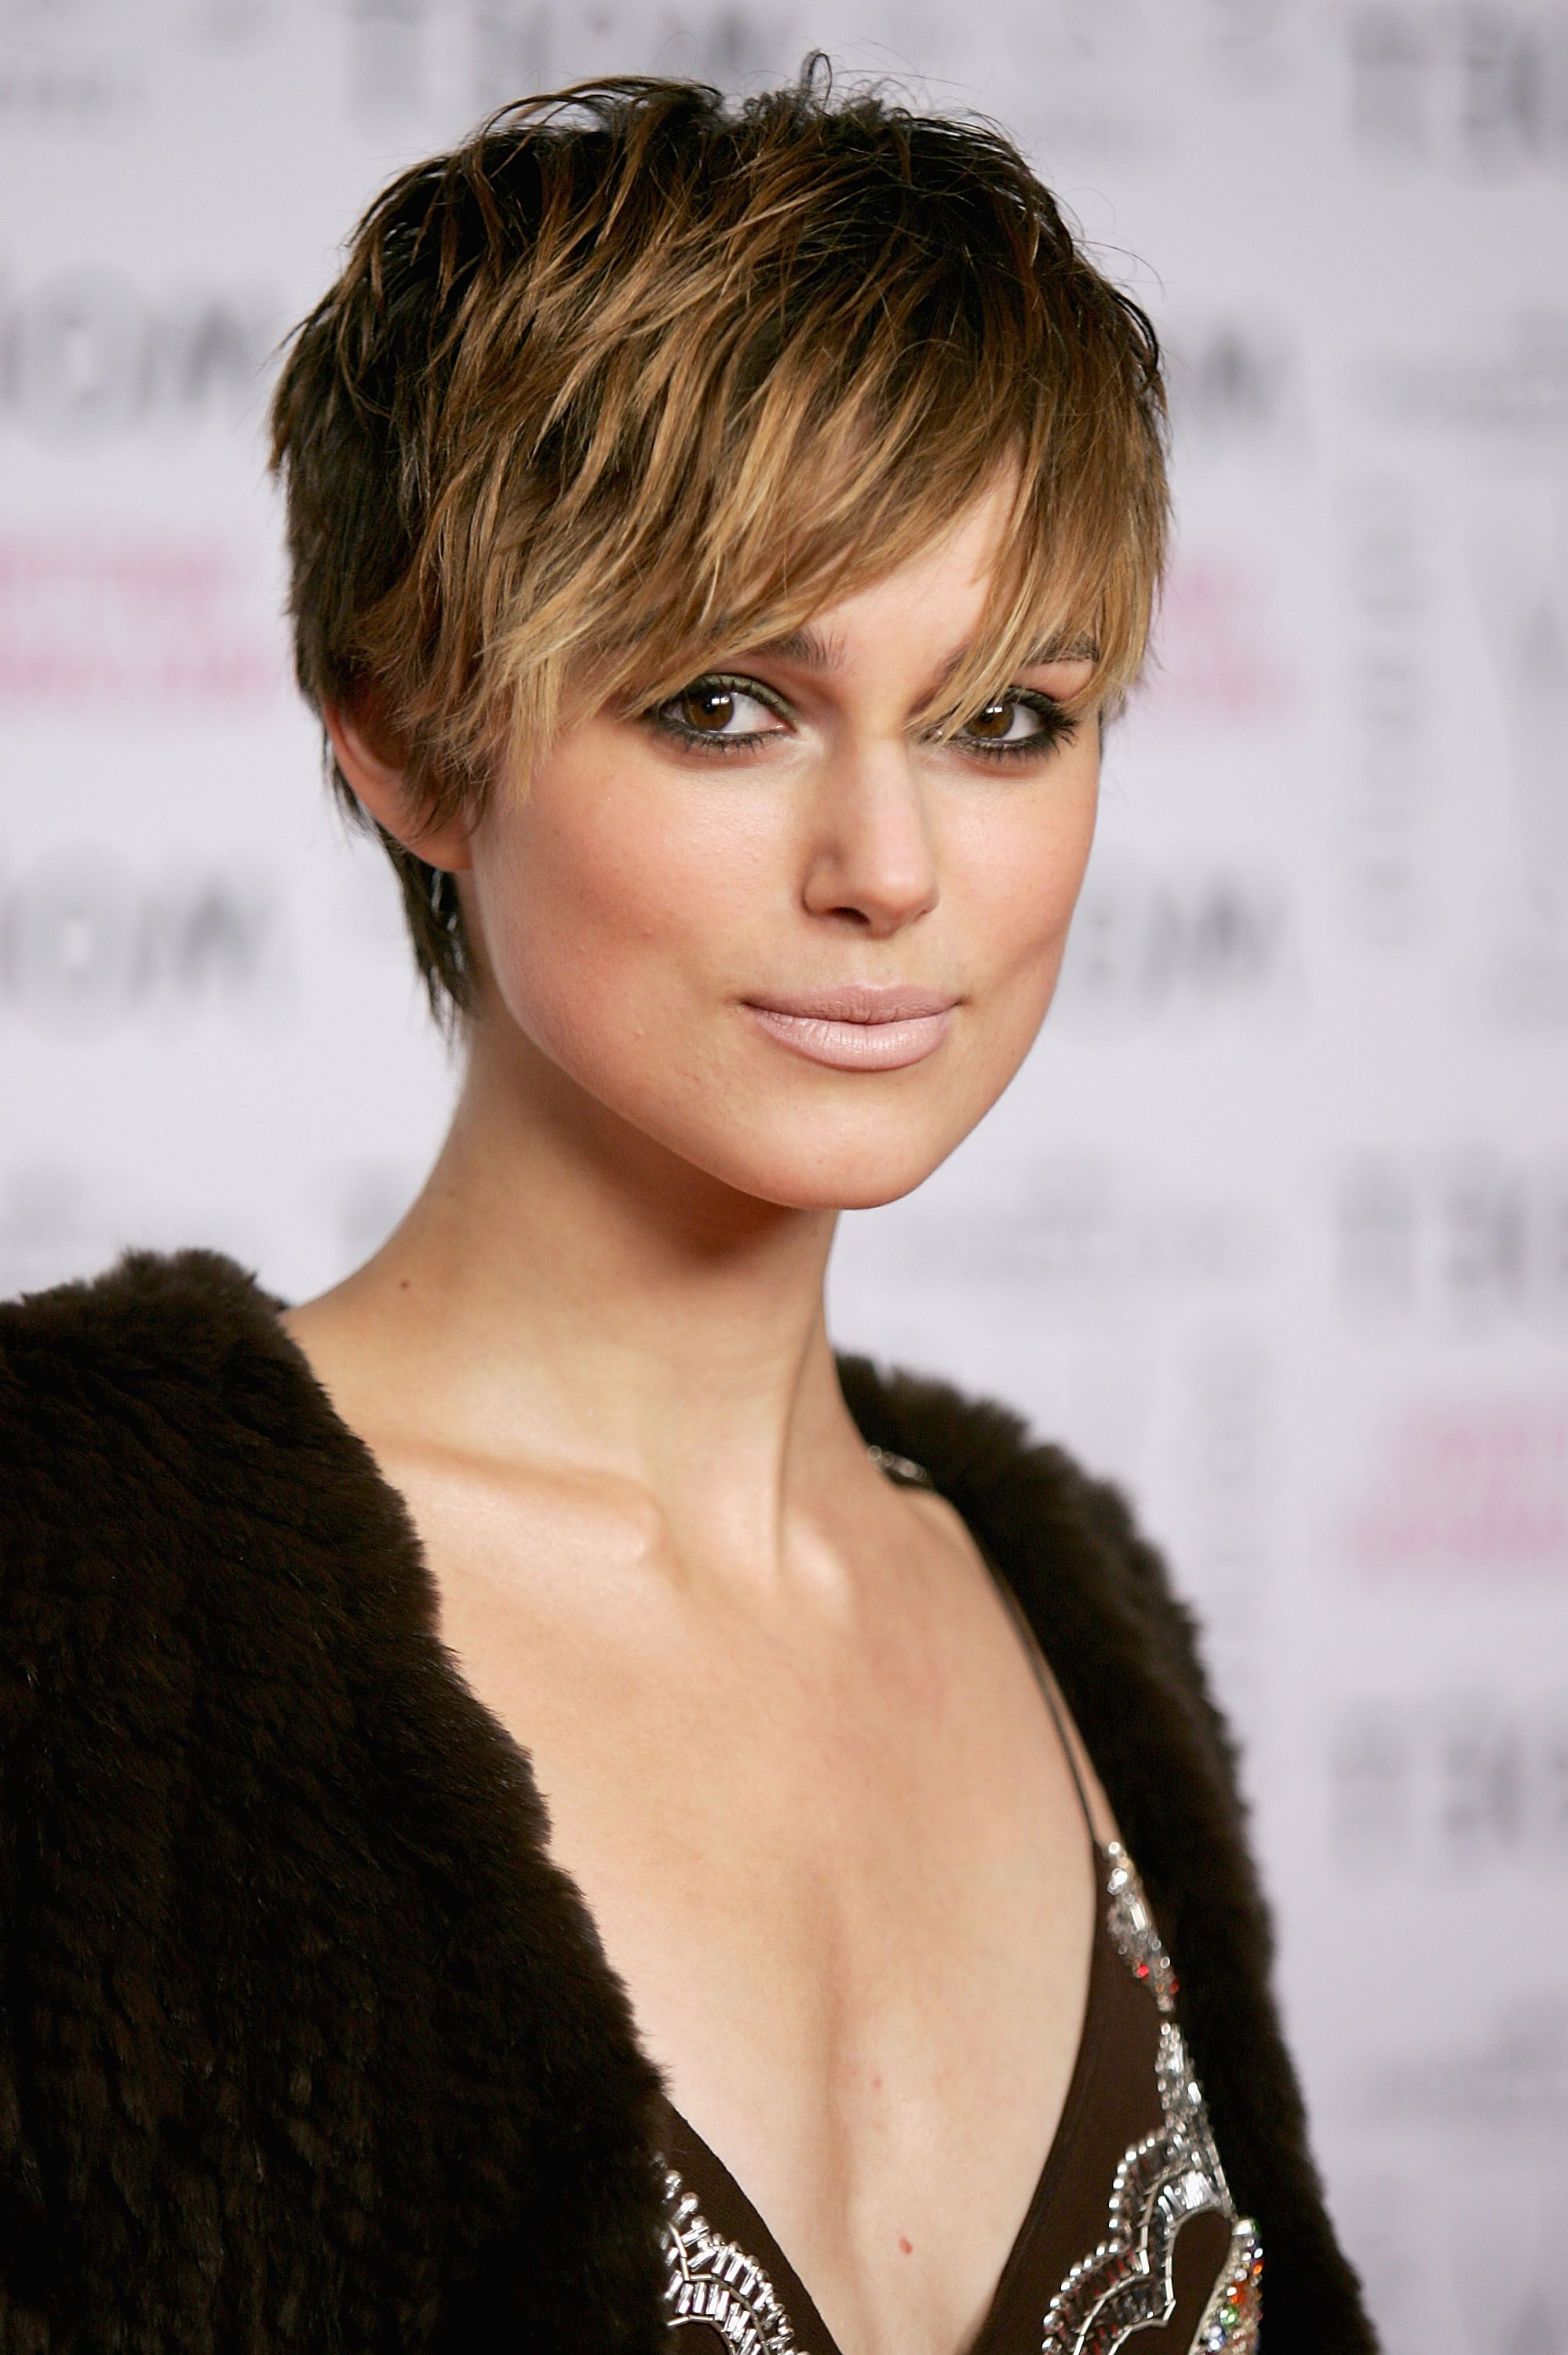 53 Best Pixie Cut Hairstyle Ideas 2018 – Cute Celebrity Pixie Haircuts Pertaining To Choppy Pixie Bob Haircuts With Stacked Nape (View 13 of 20)